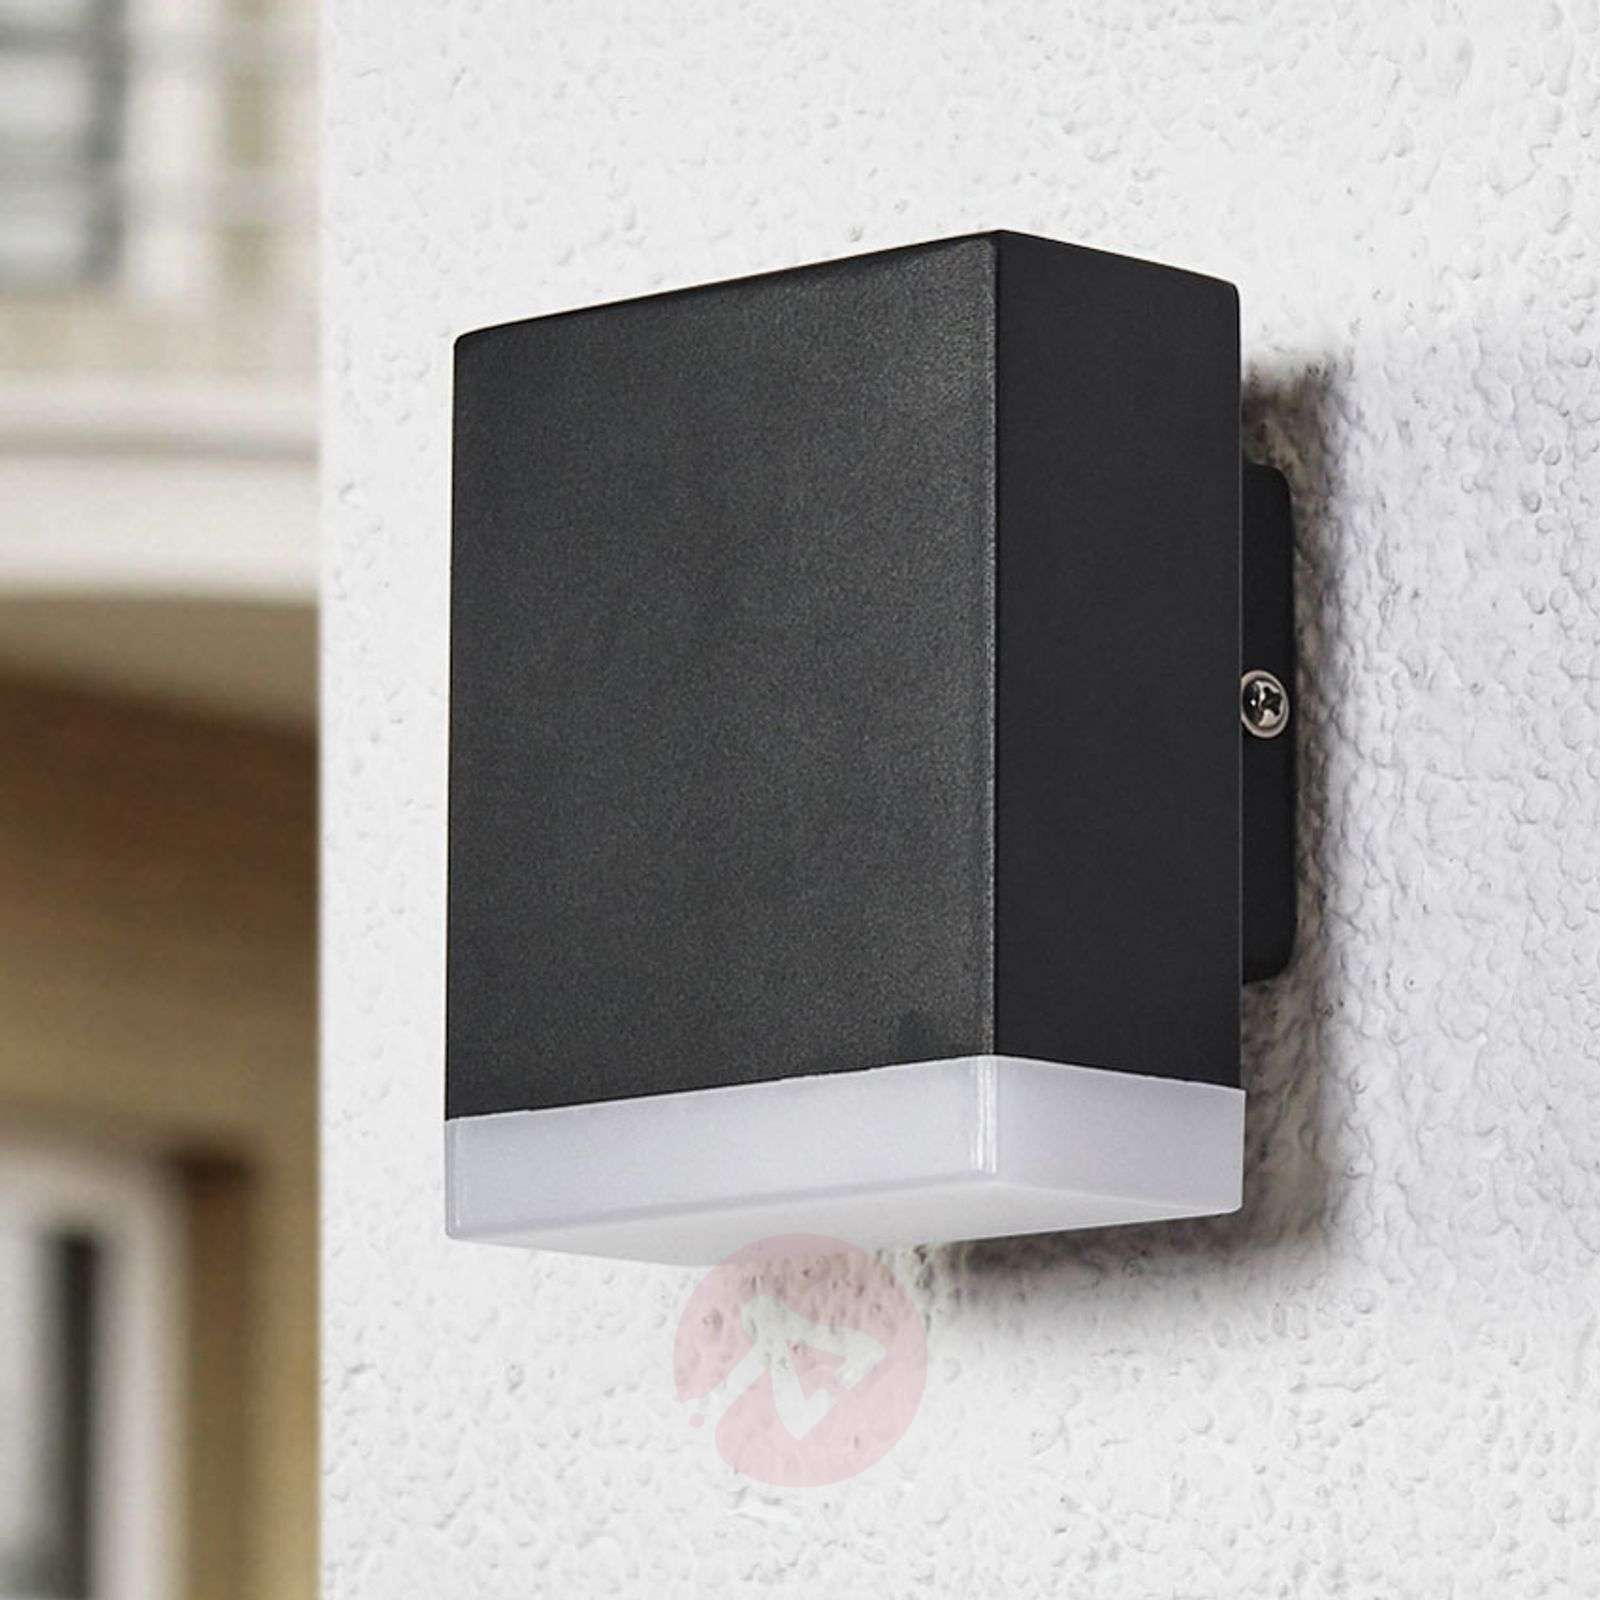 Compra aplique de pared exterior led moderno aya negro - Aplique de pared exterior ...